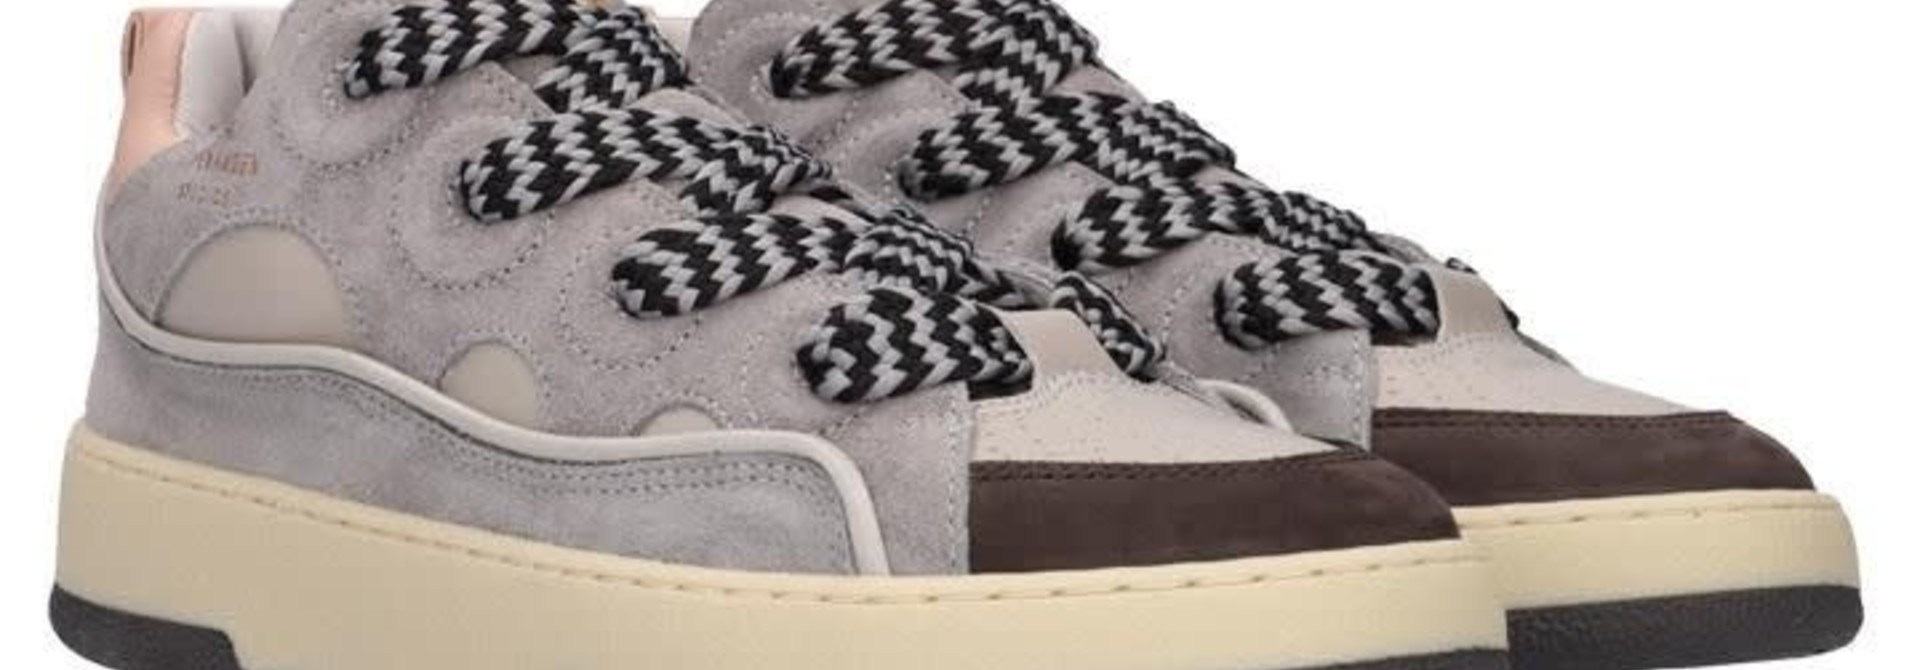 CPH201 Leather mix grey